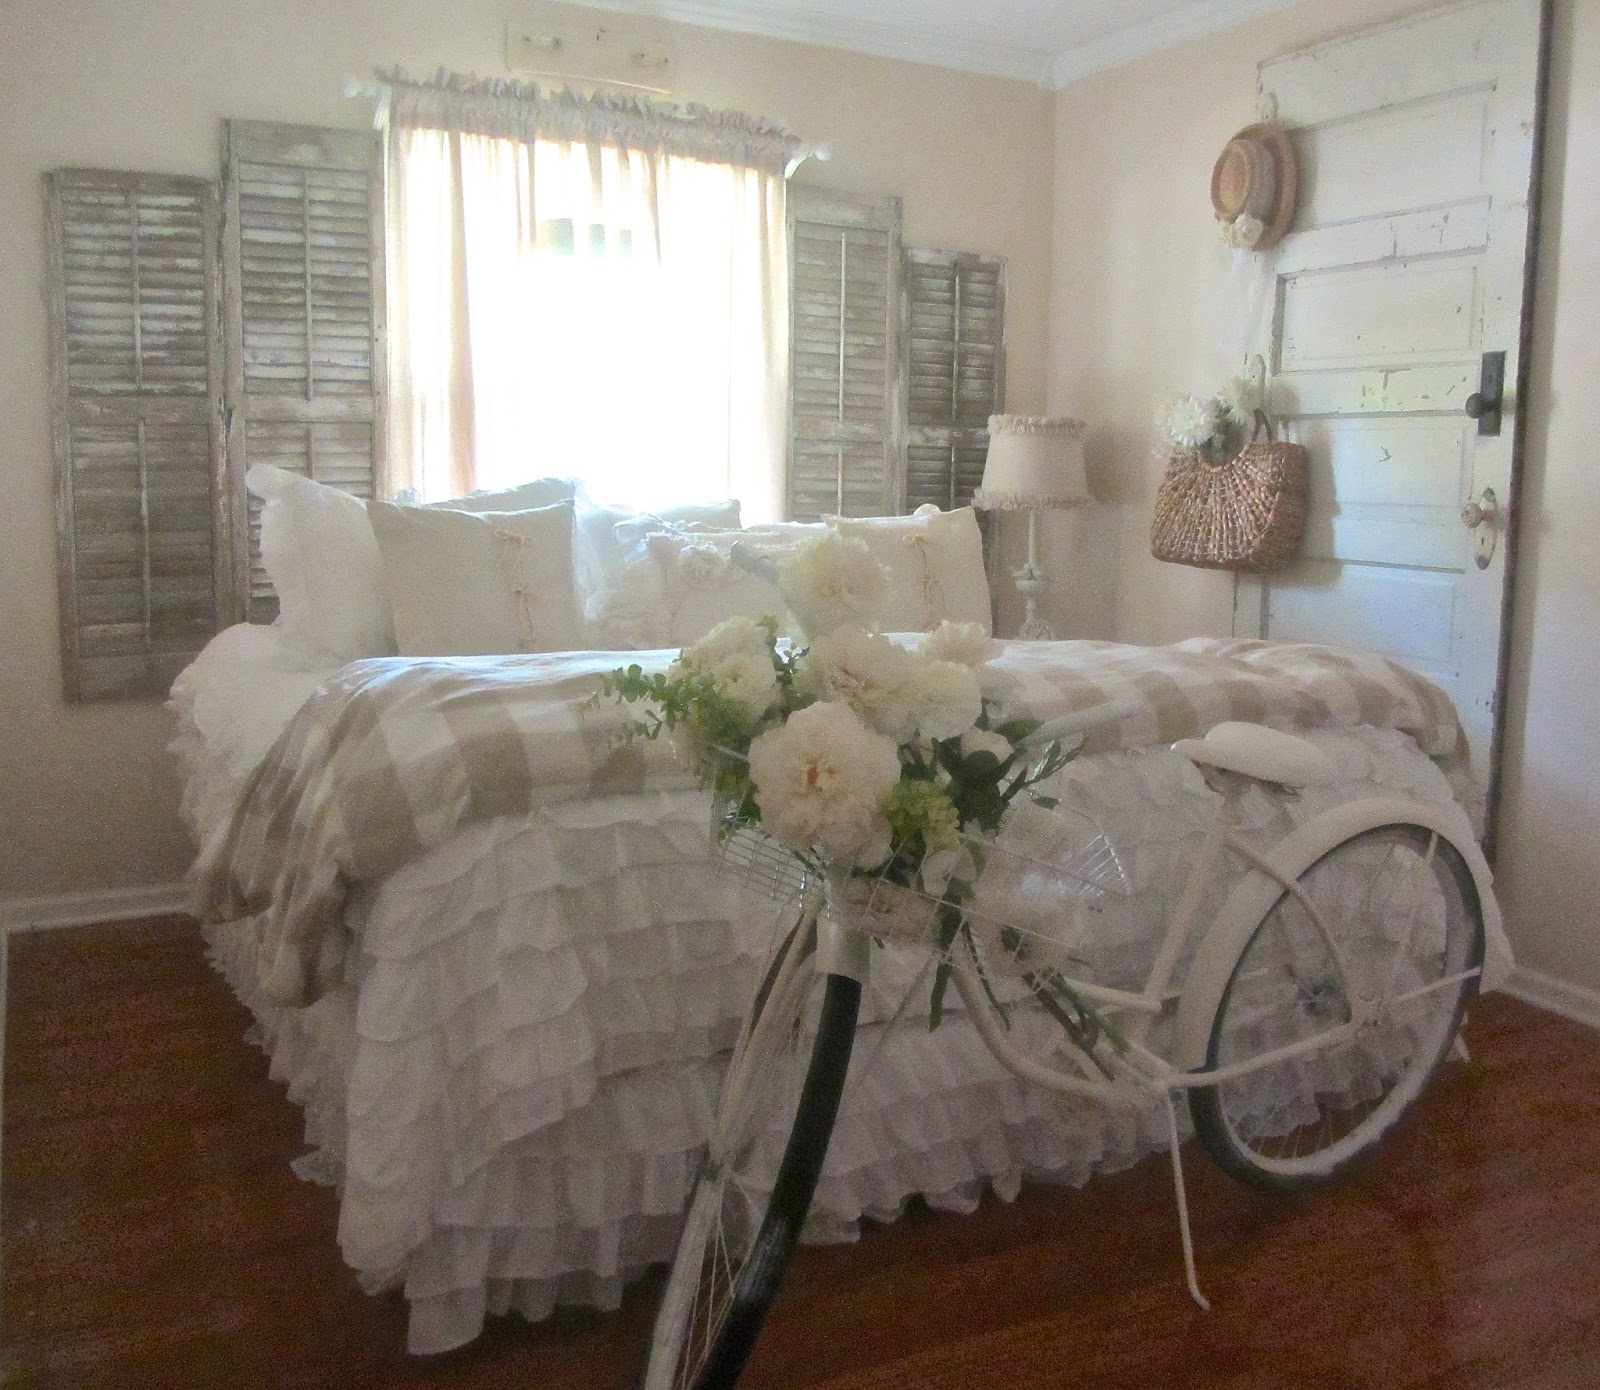 Junk chic cottage update on guest room and new treasures - Dormitorios vintage chic ...